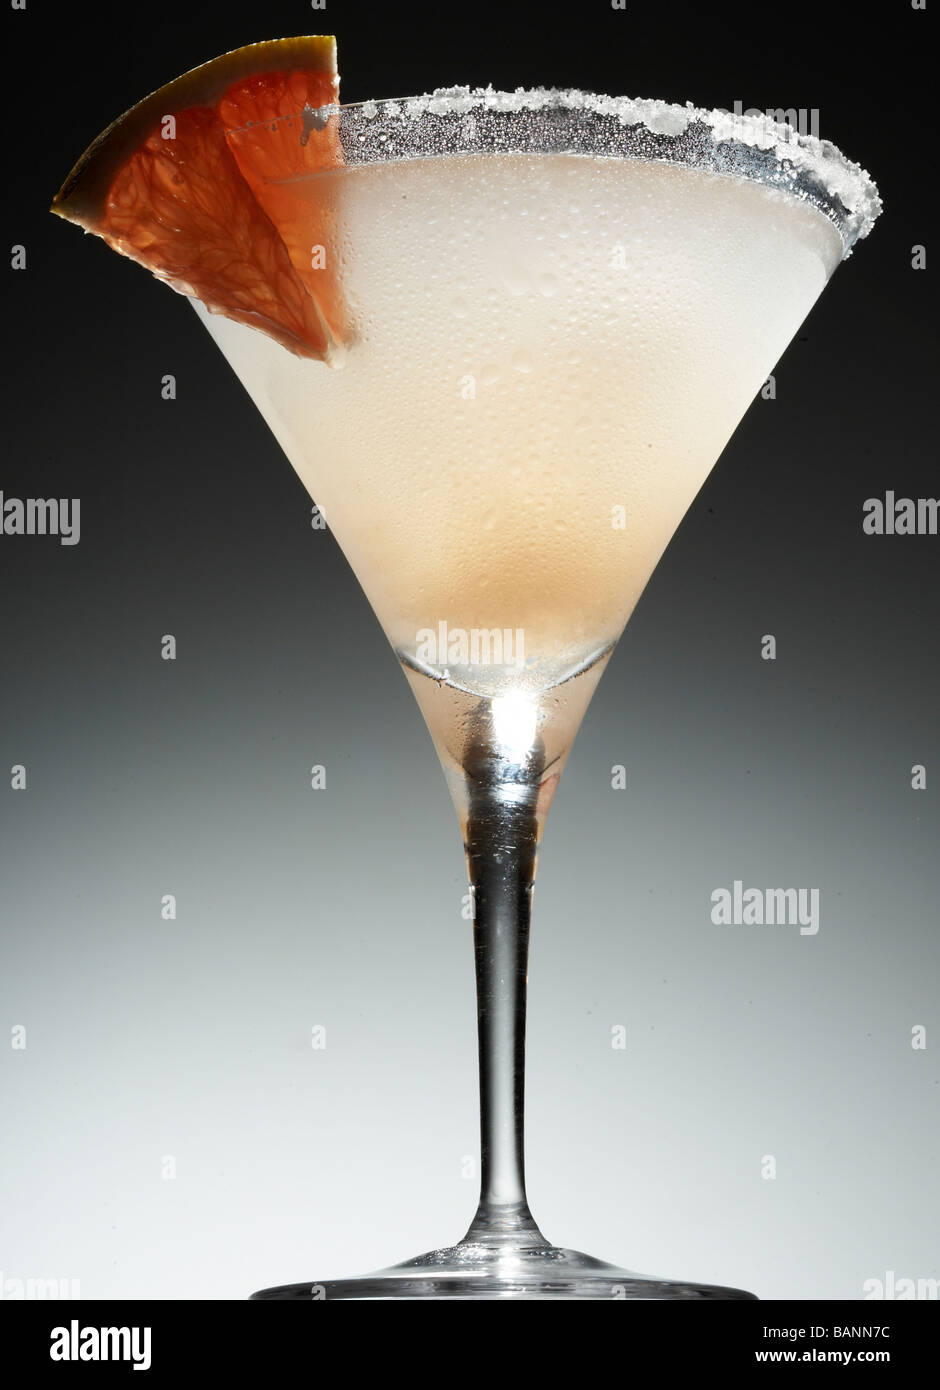 Salty Dog Cocktail with Salt on Rim and Fruit Wedge Stock Photo